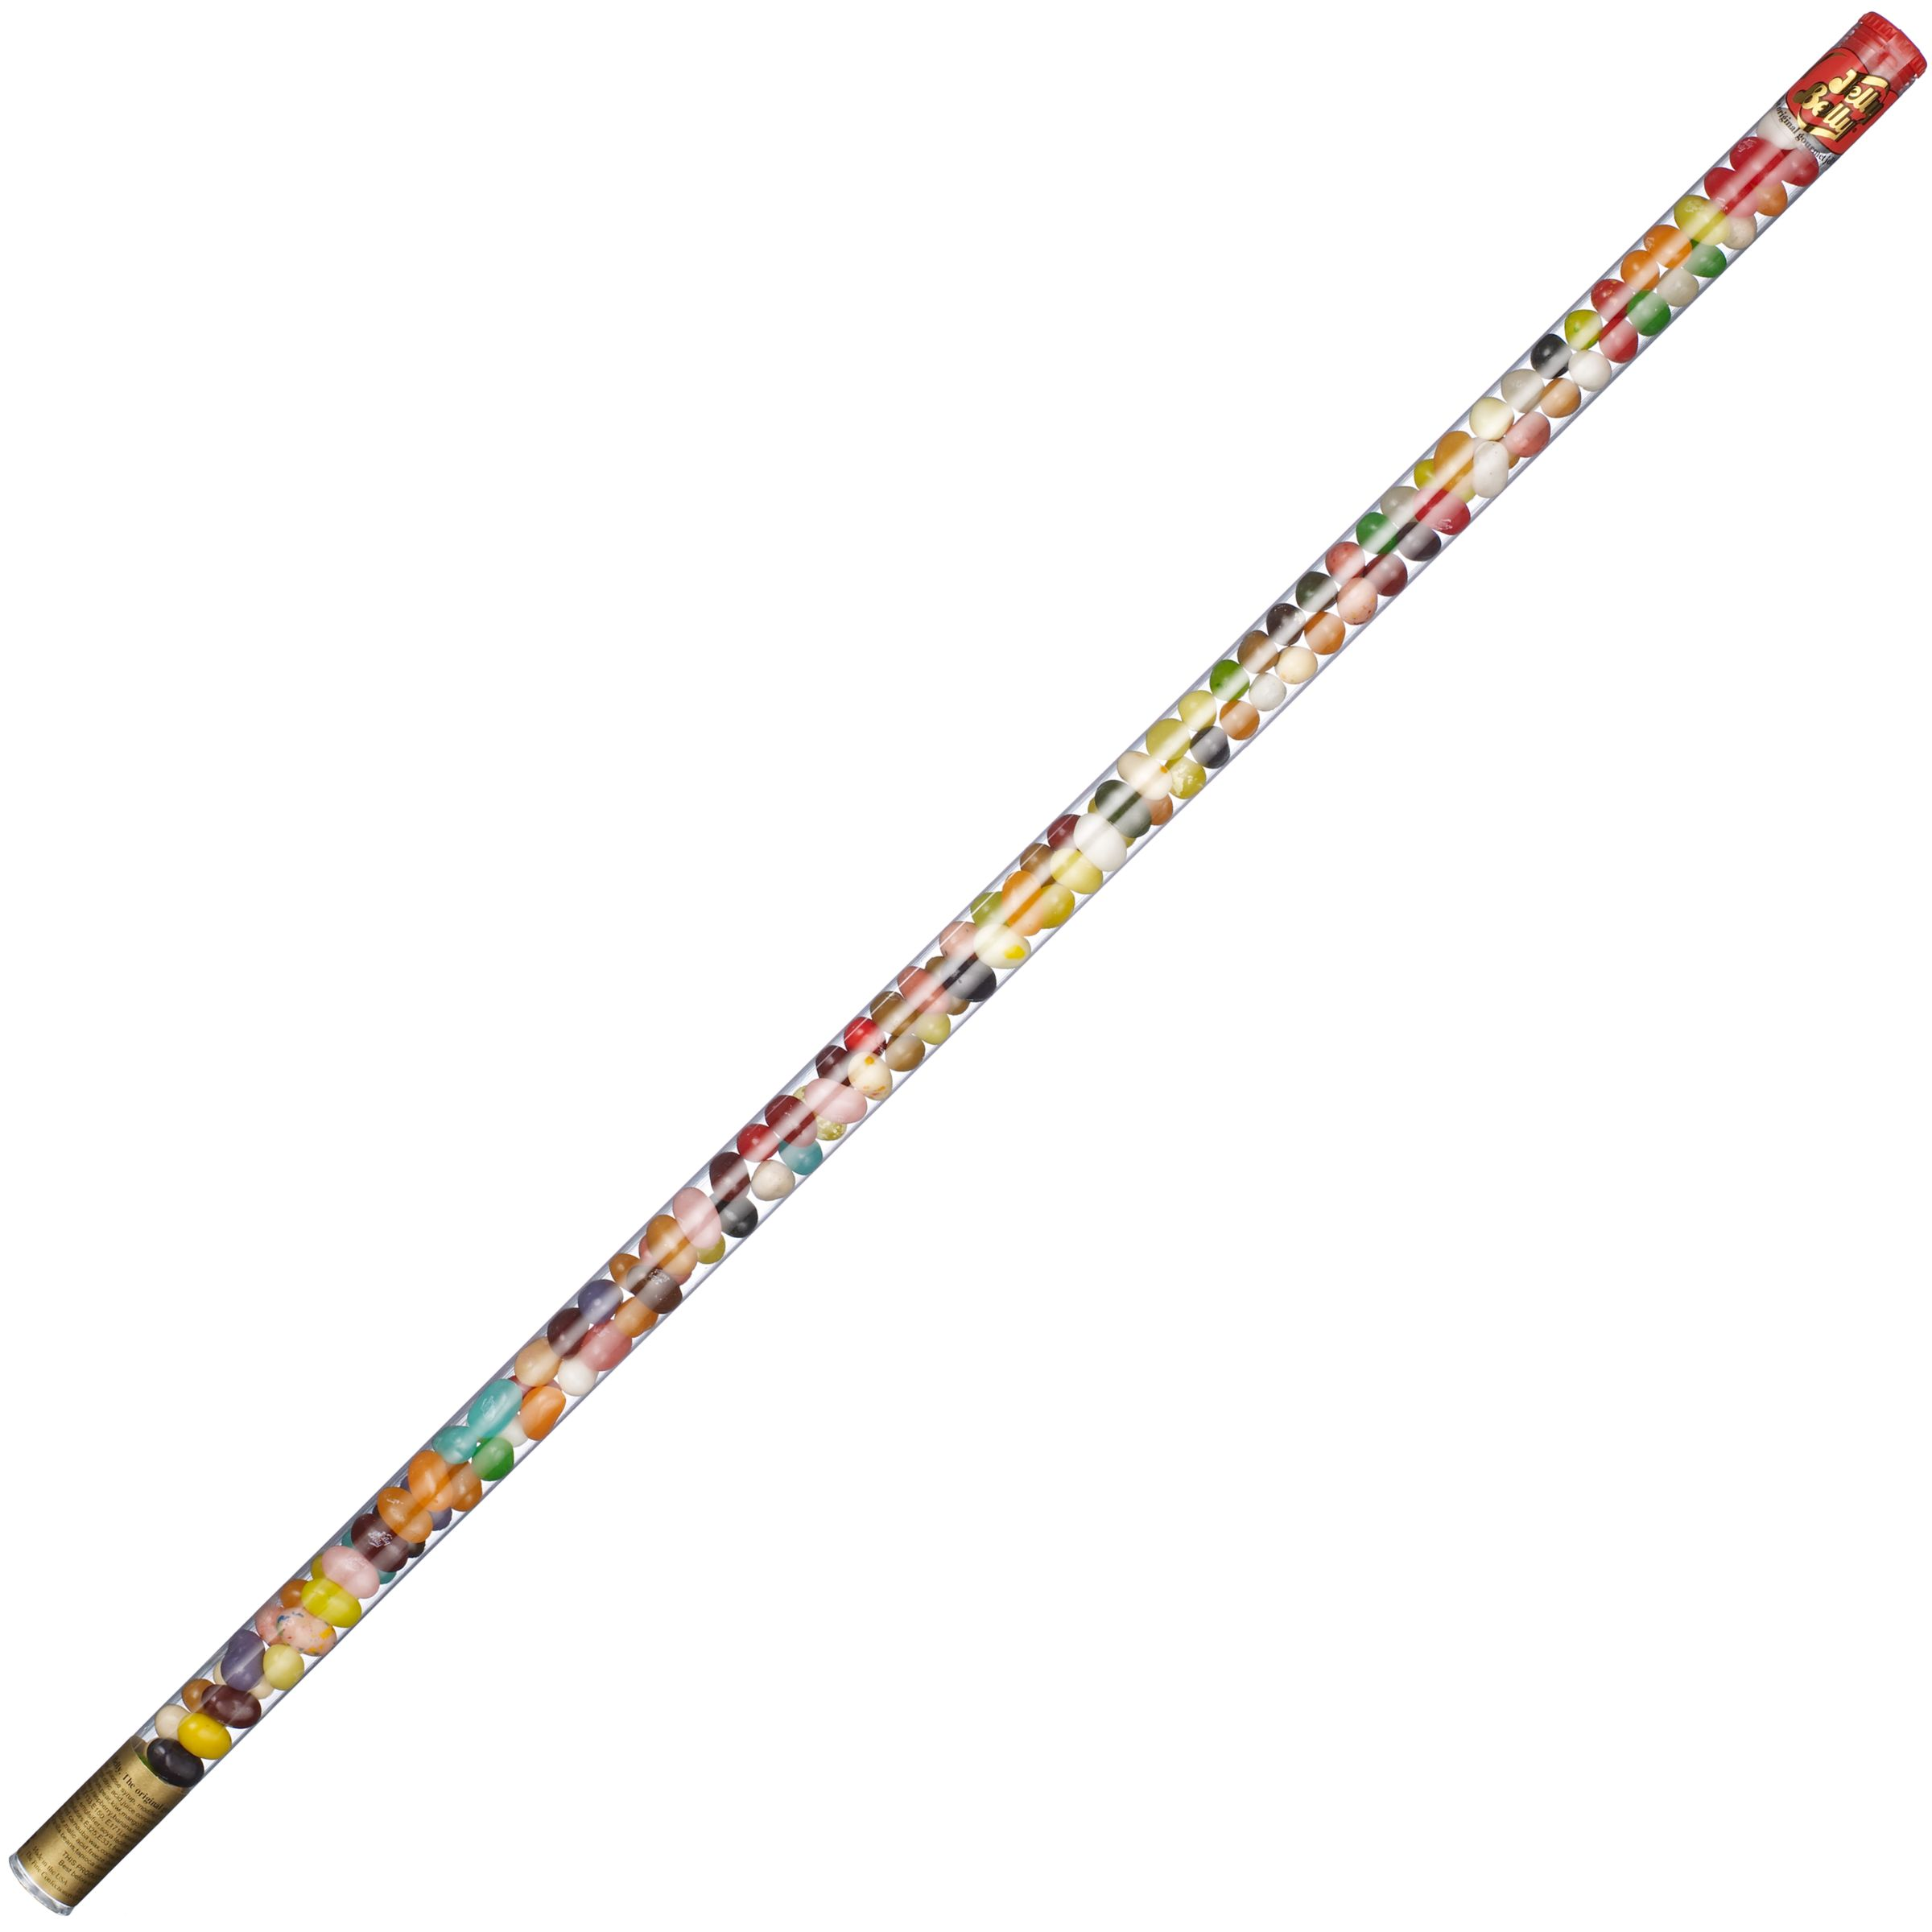 Jelly Belly Jelly Belly 50 Flavour Tube, 125g